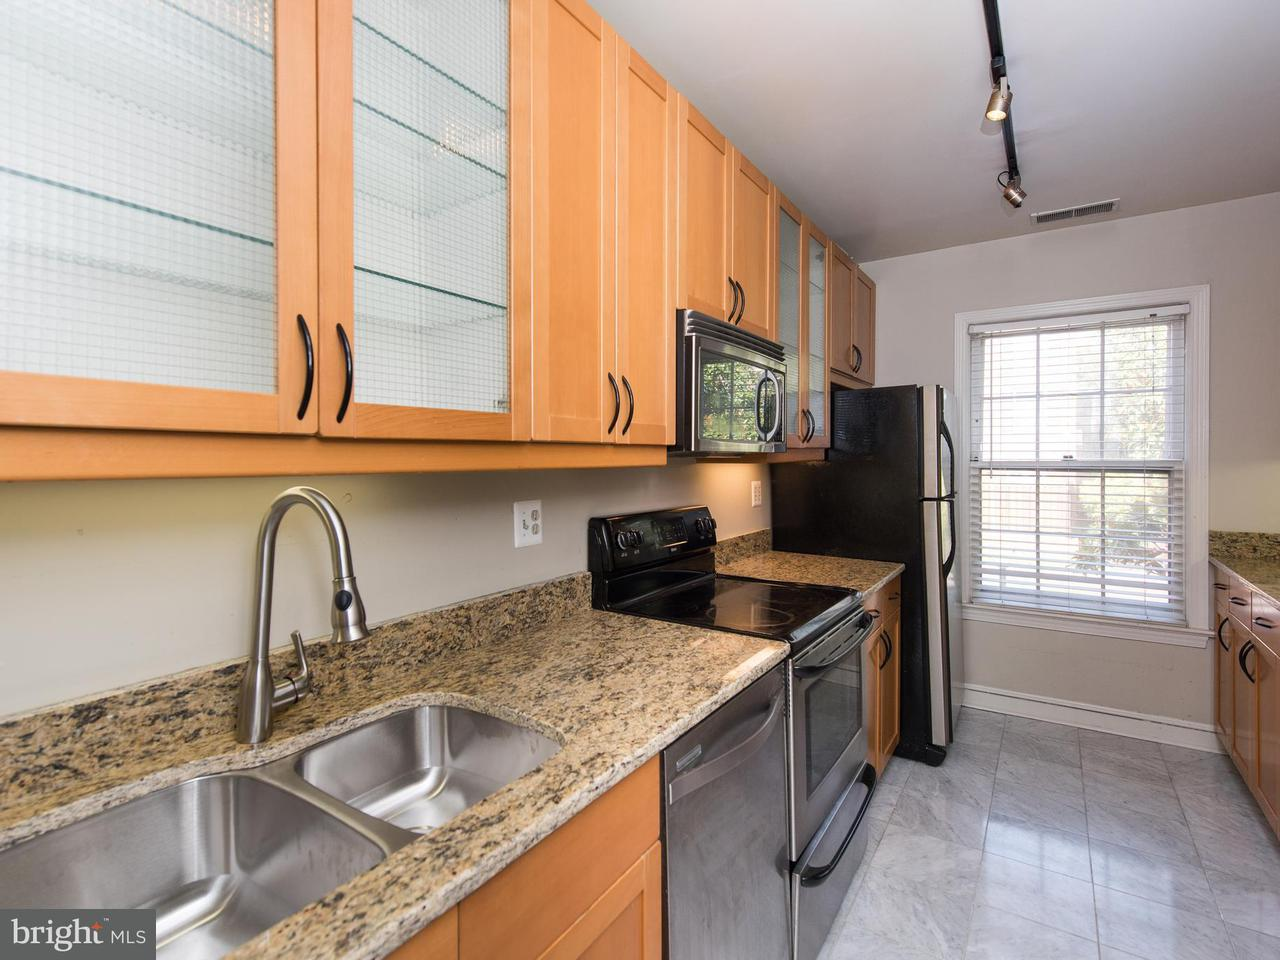 Other Residential for Rent at 1600 Beekman Pl NW #b Washington, District Of Columbia 20009 United States